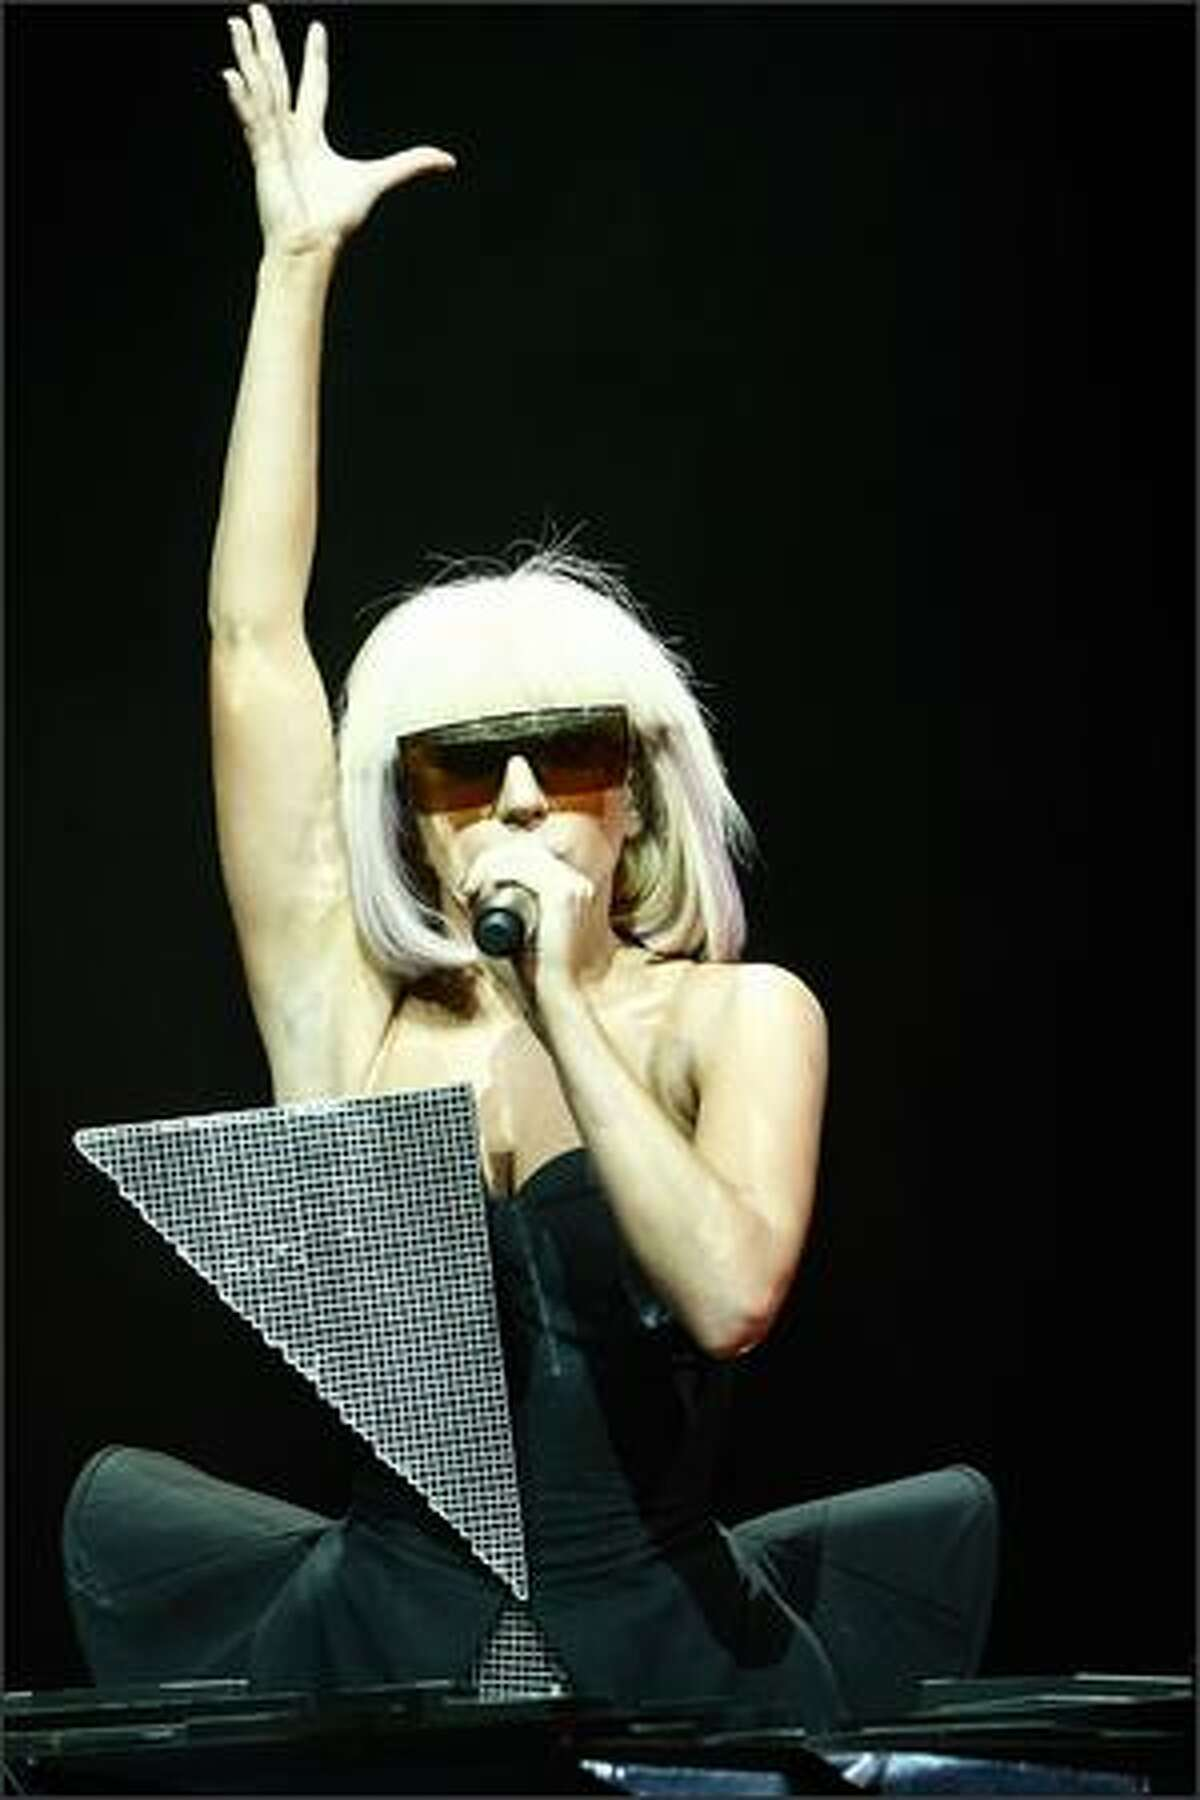 Singer Lady GaGa performs.